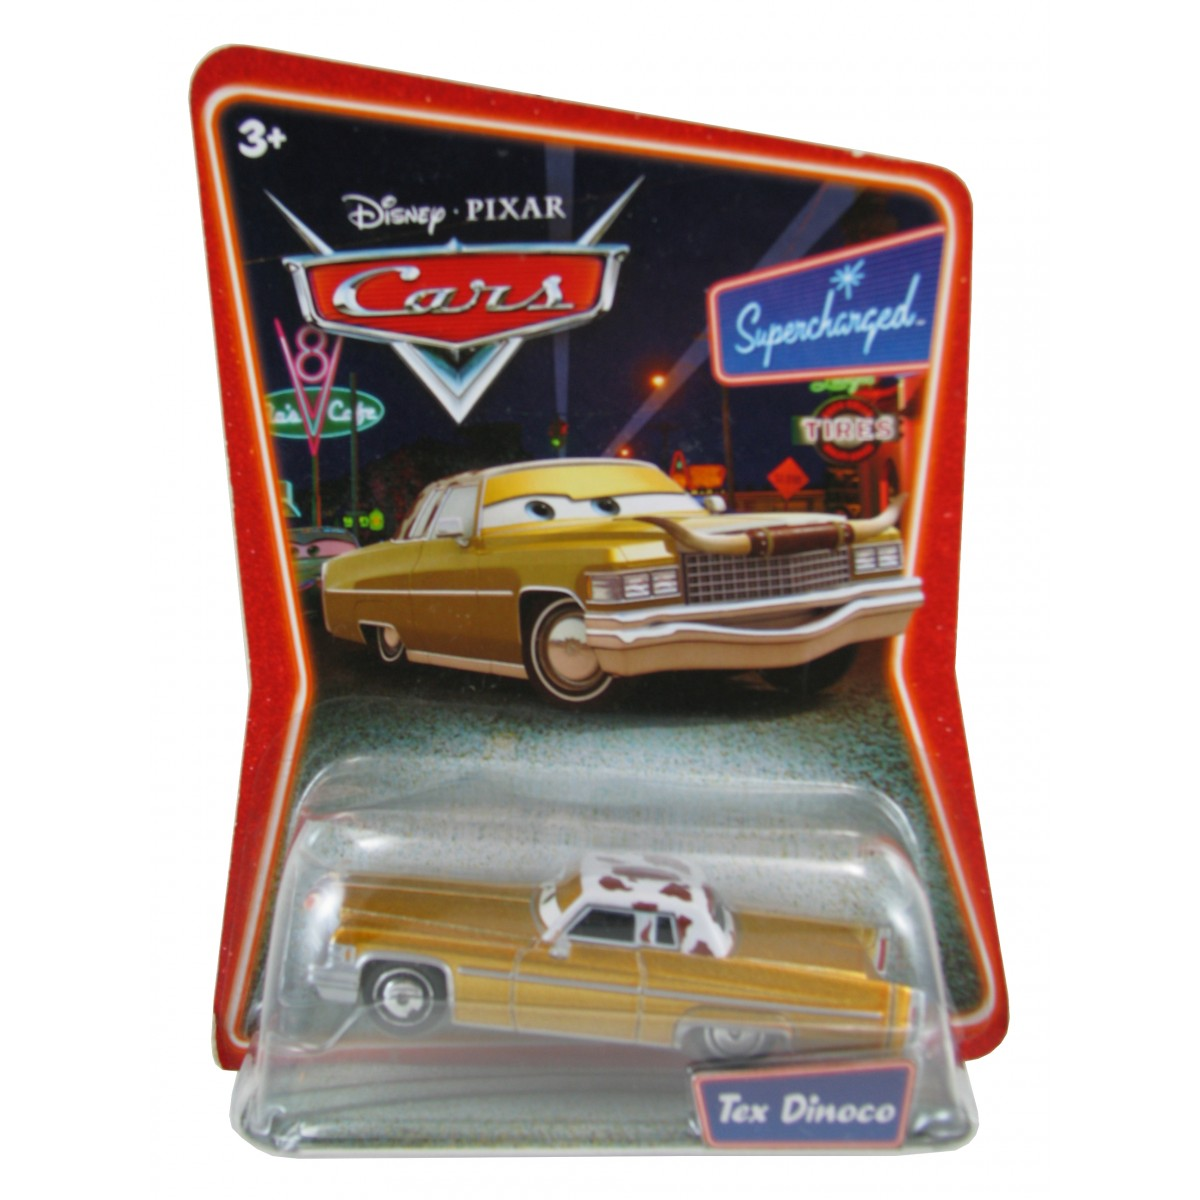 Disney Pixar - Cars - Tex Tinoco  - Hobby Lobby CollectorStore